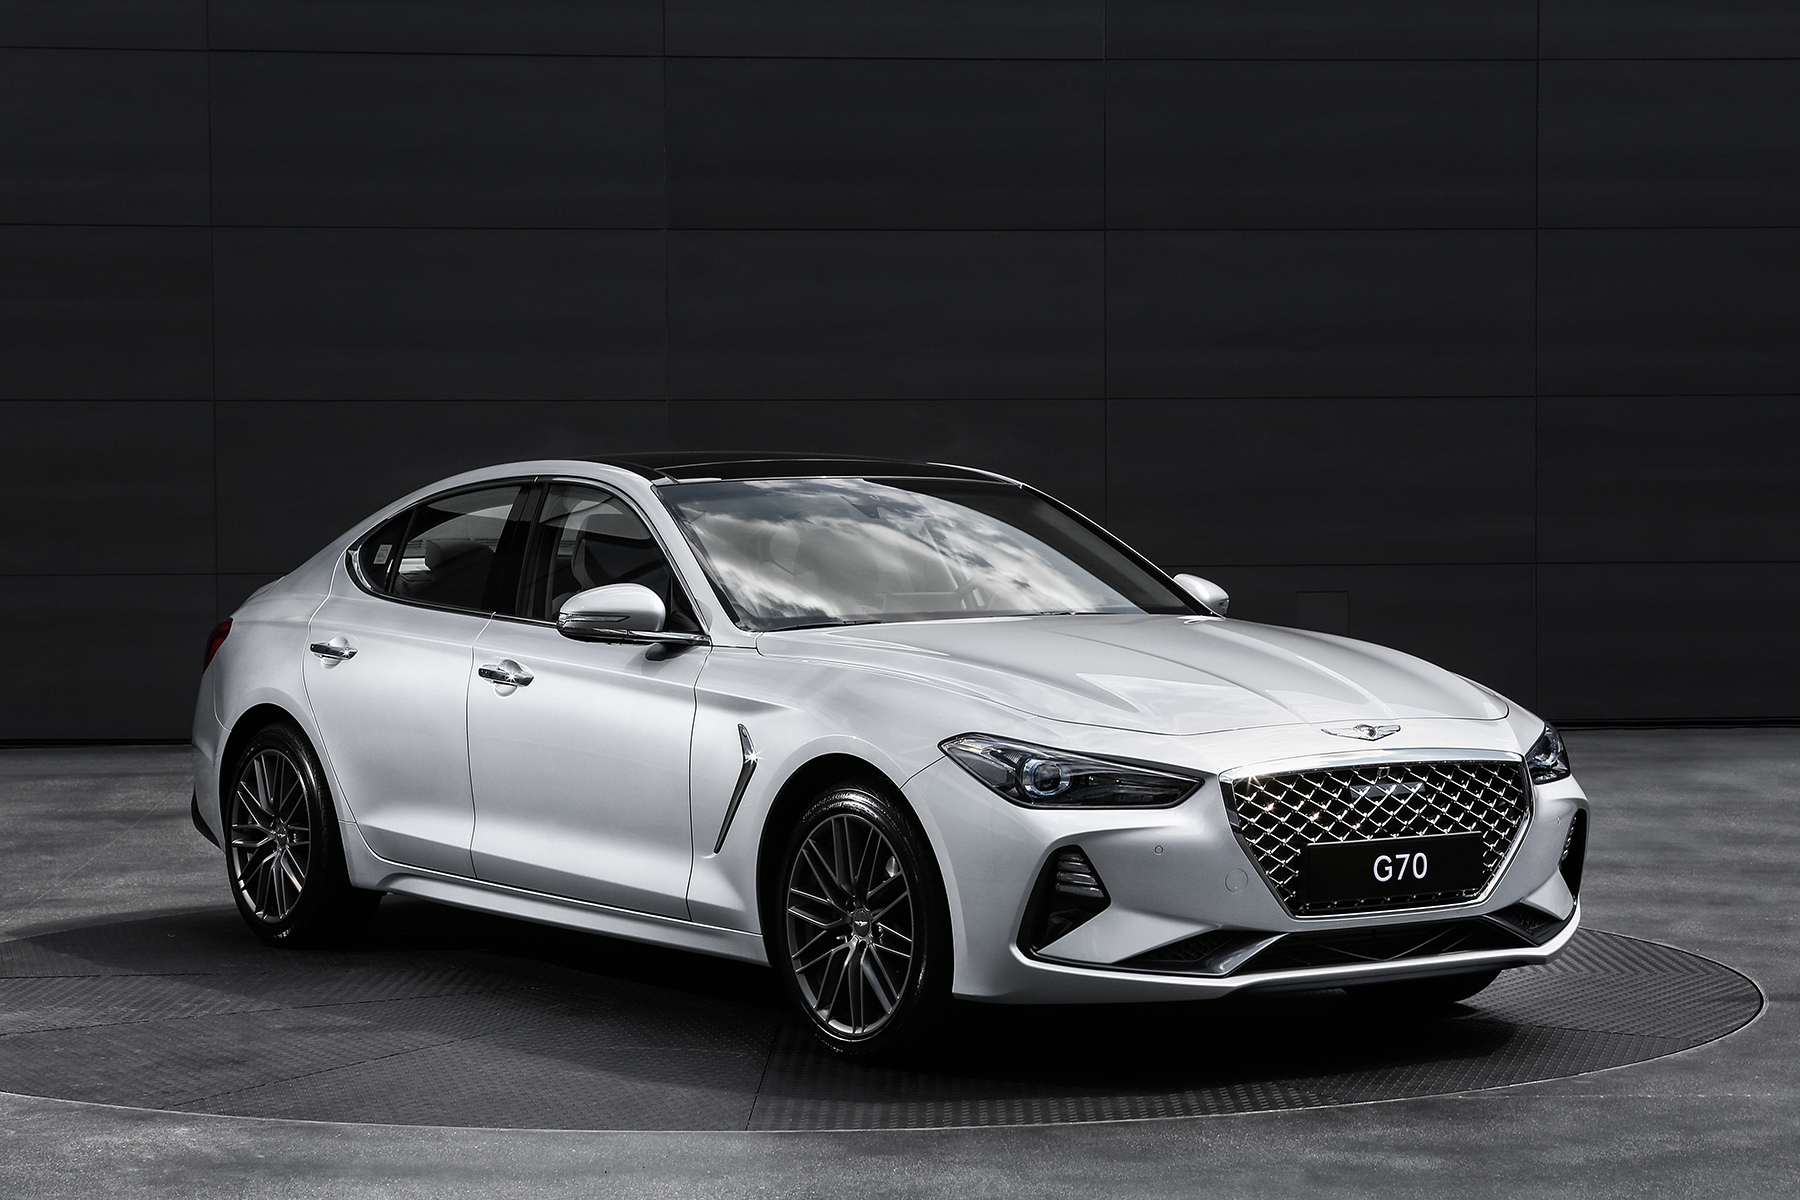 First Drive The 2019 Genesis G70 Is A Grown Up Kia